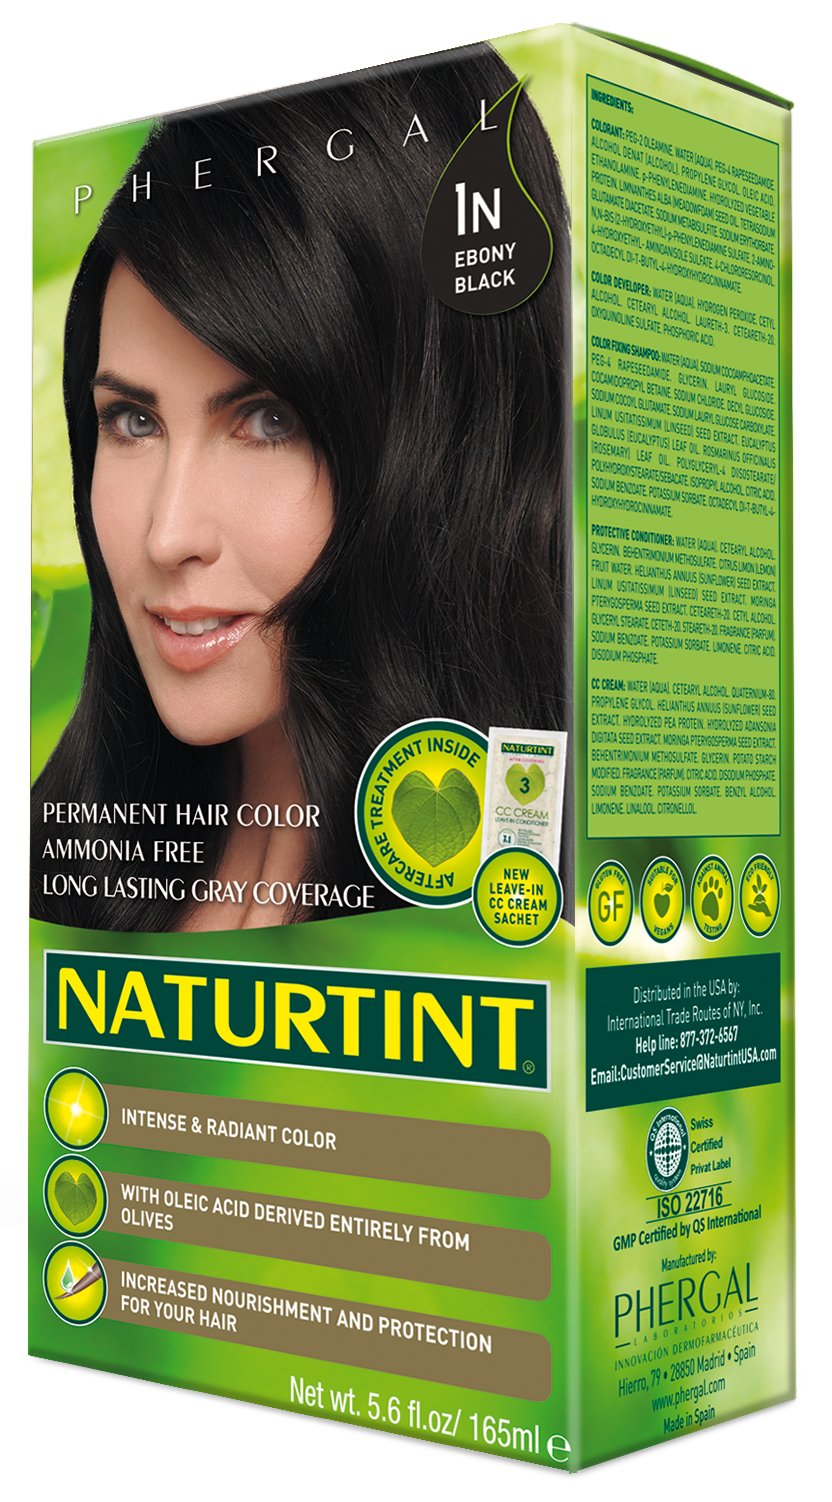 Naturtint Permanent Hair Color - 1N Ebony Black, 5.28 fl oz (6-pack) by Naturtint (Image #3)